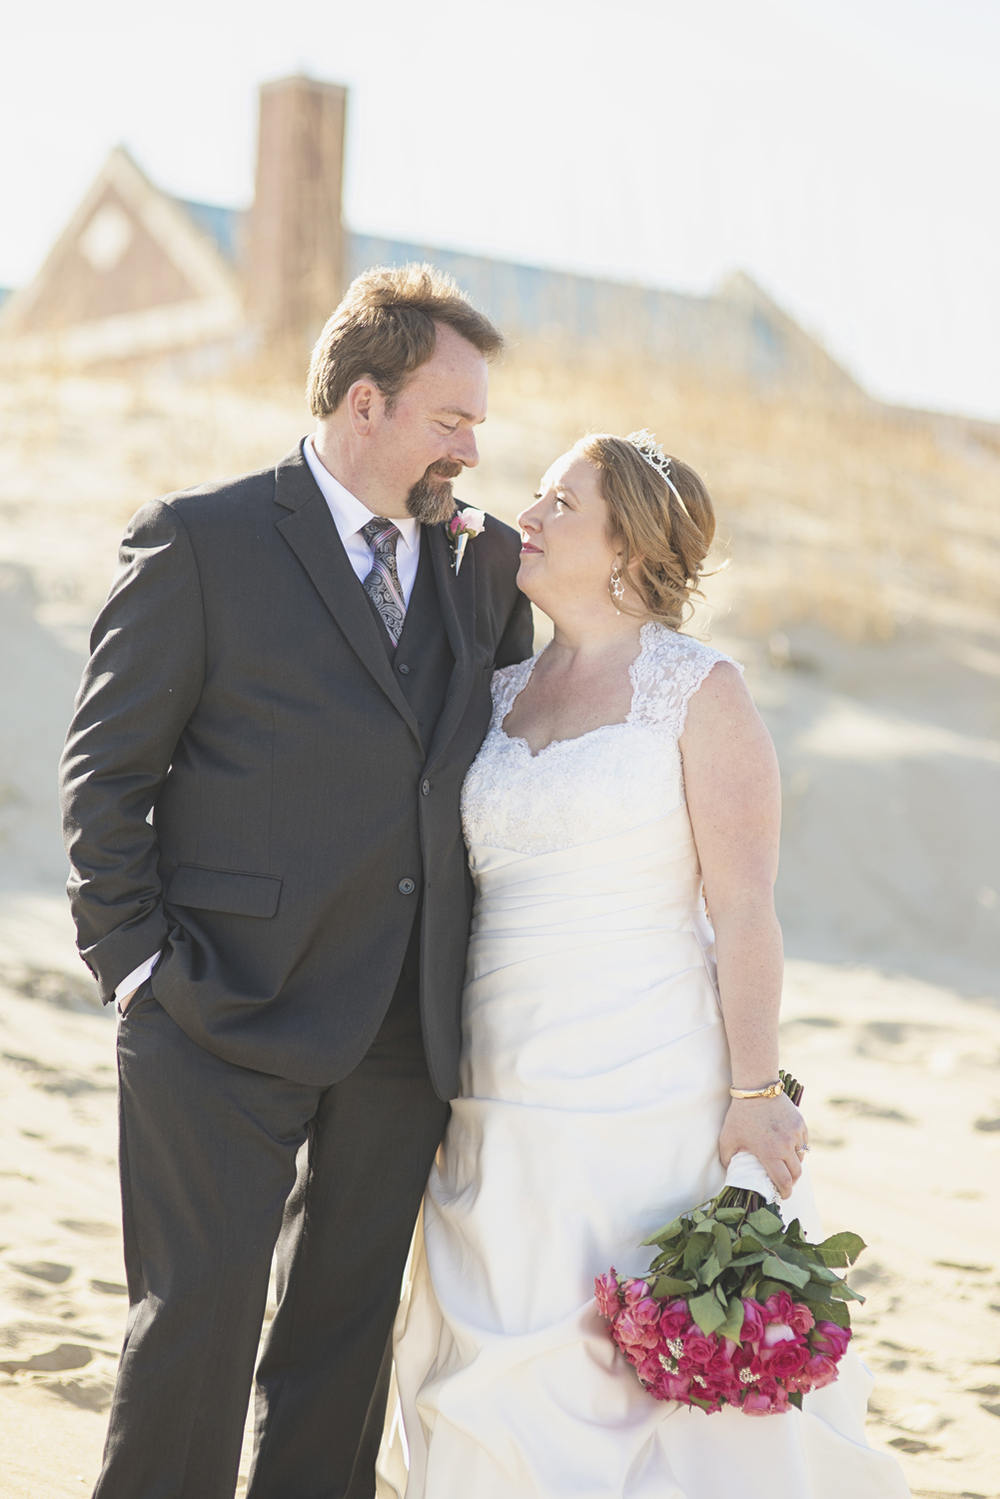 Beach bride & groom portraits | Virginia Beach wedding